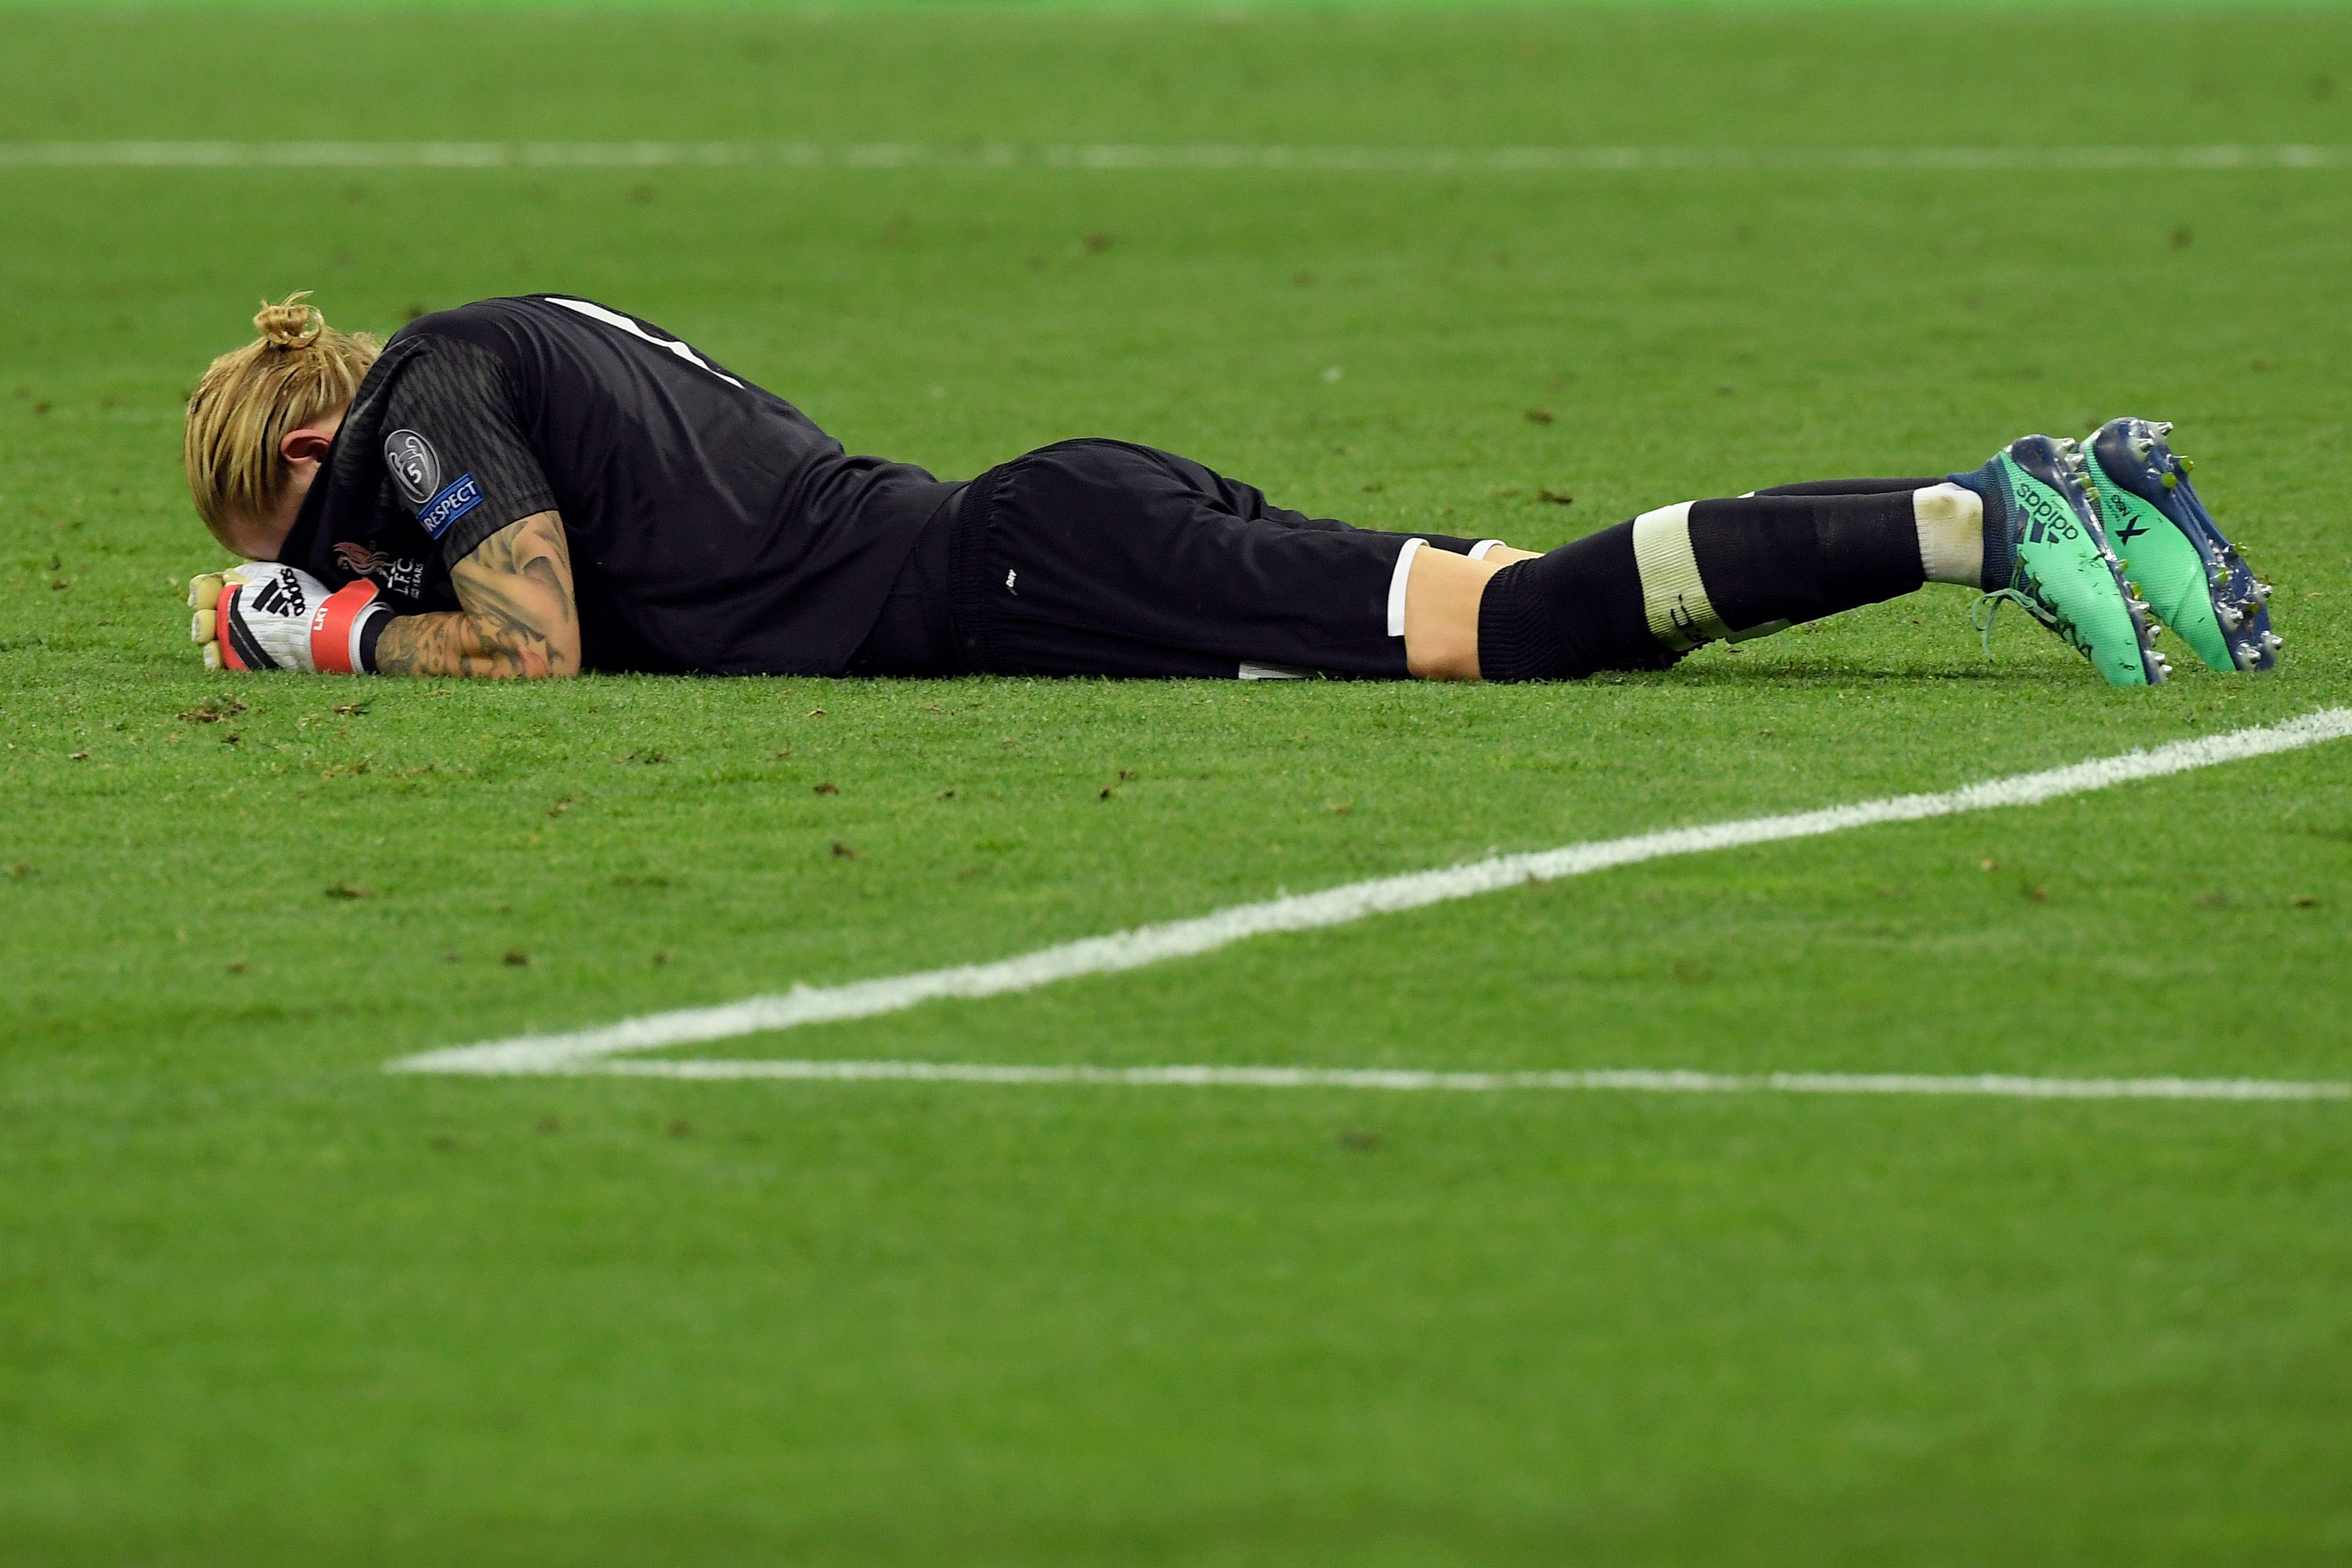 Liverpool's German goalkeeper Loris Karius reacts after the UEFA Champions League final football match between Liverpool and Real Madrid at the Olympic Stadium in Kiev, Ukraine on May 26, 2018. - Real Madrid defeated Liverpool 3-1. (Photo by LLUIS GENE / AFP)        (Photo credit should read LLUIS GENE/AFP/Getty Images)